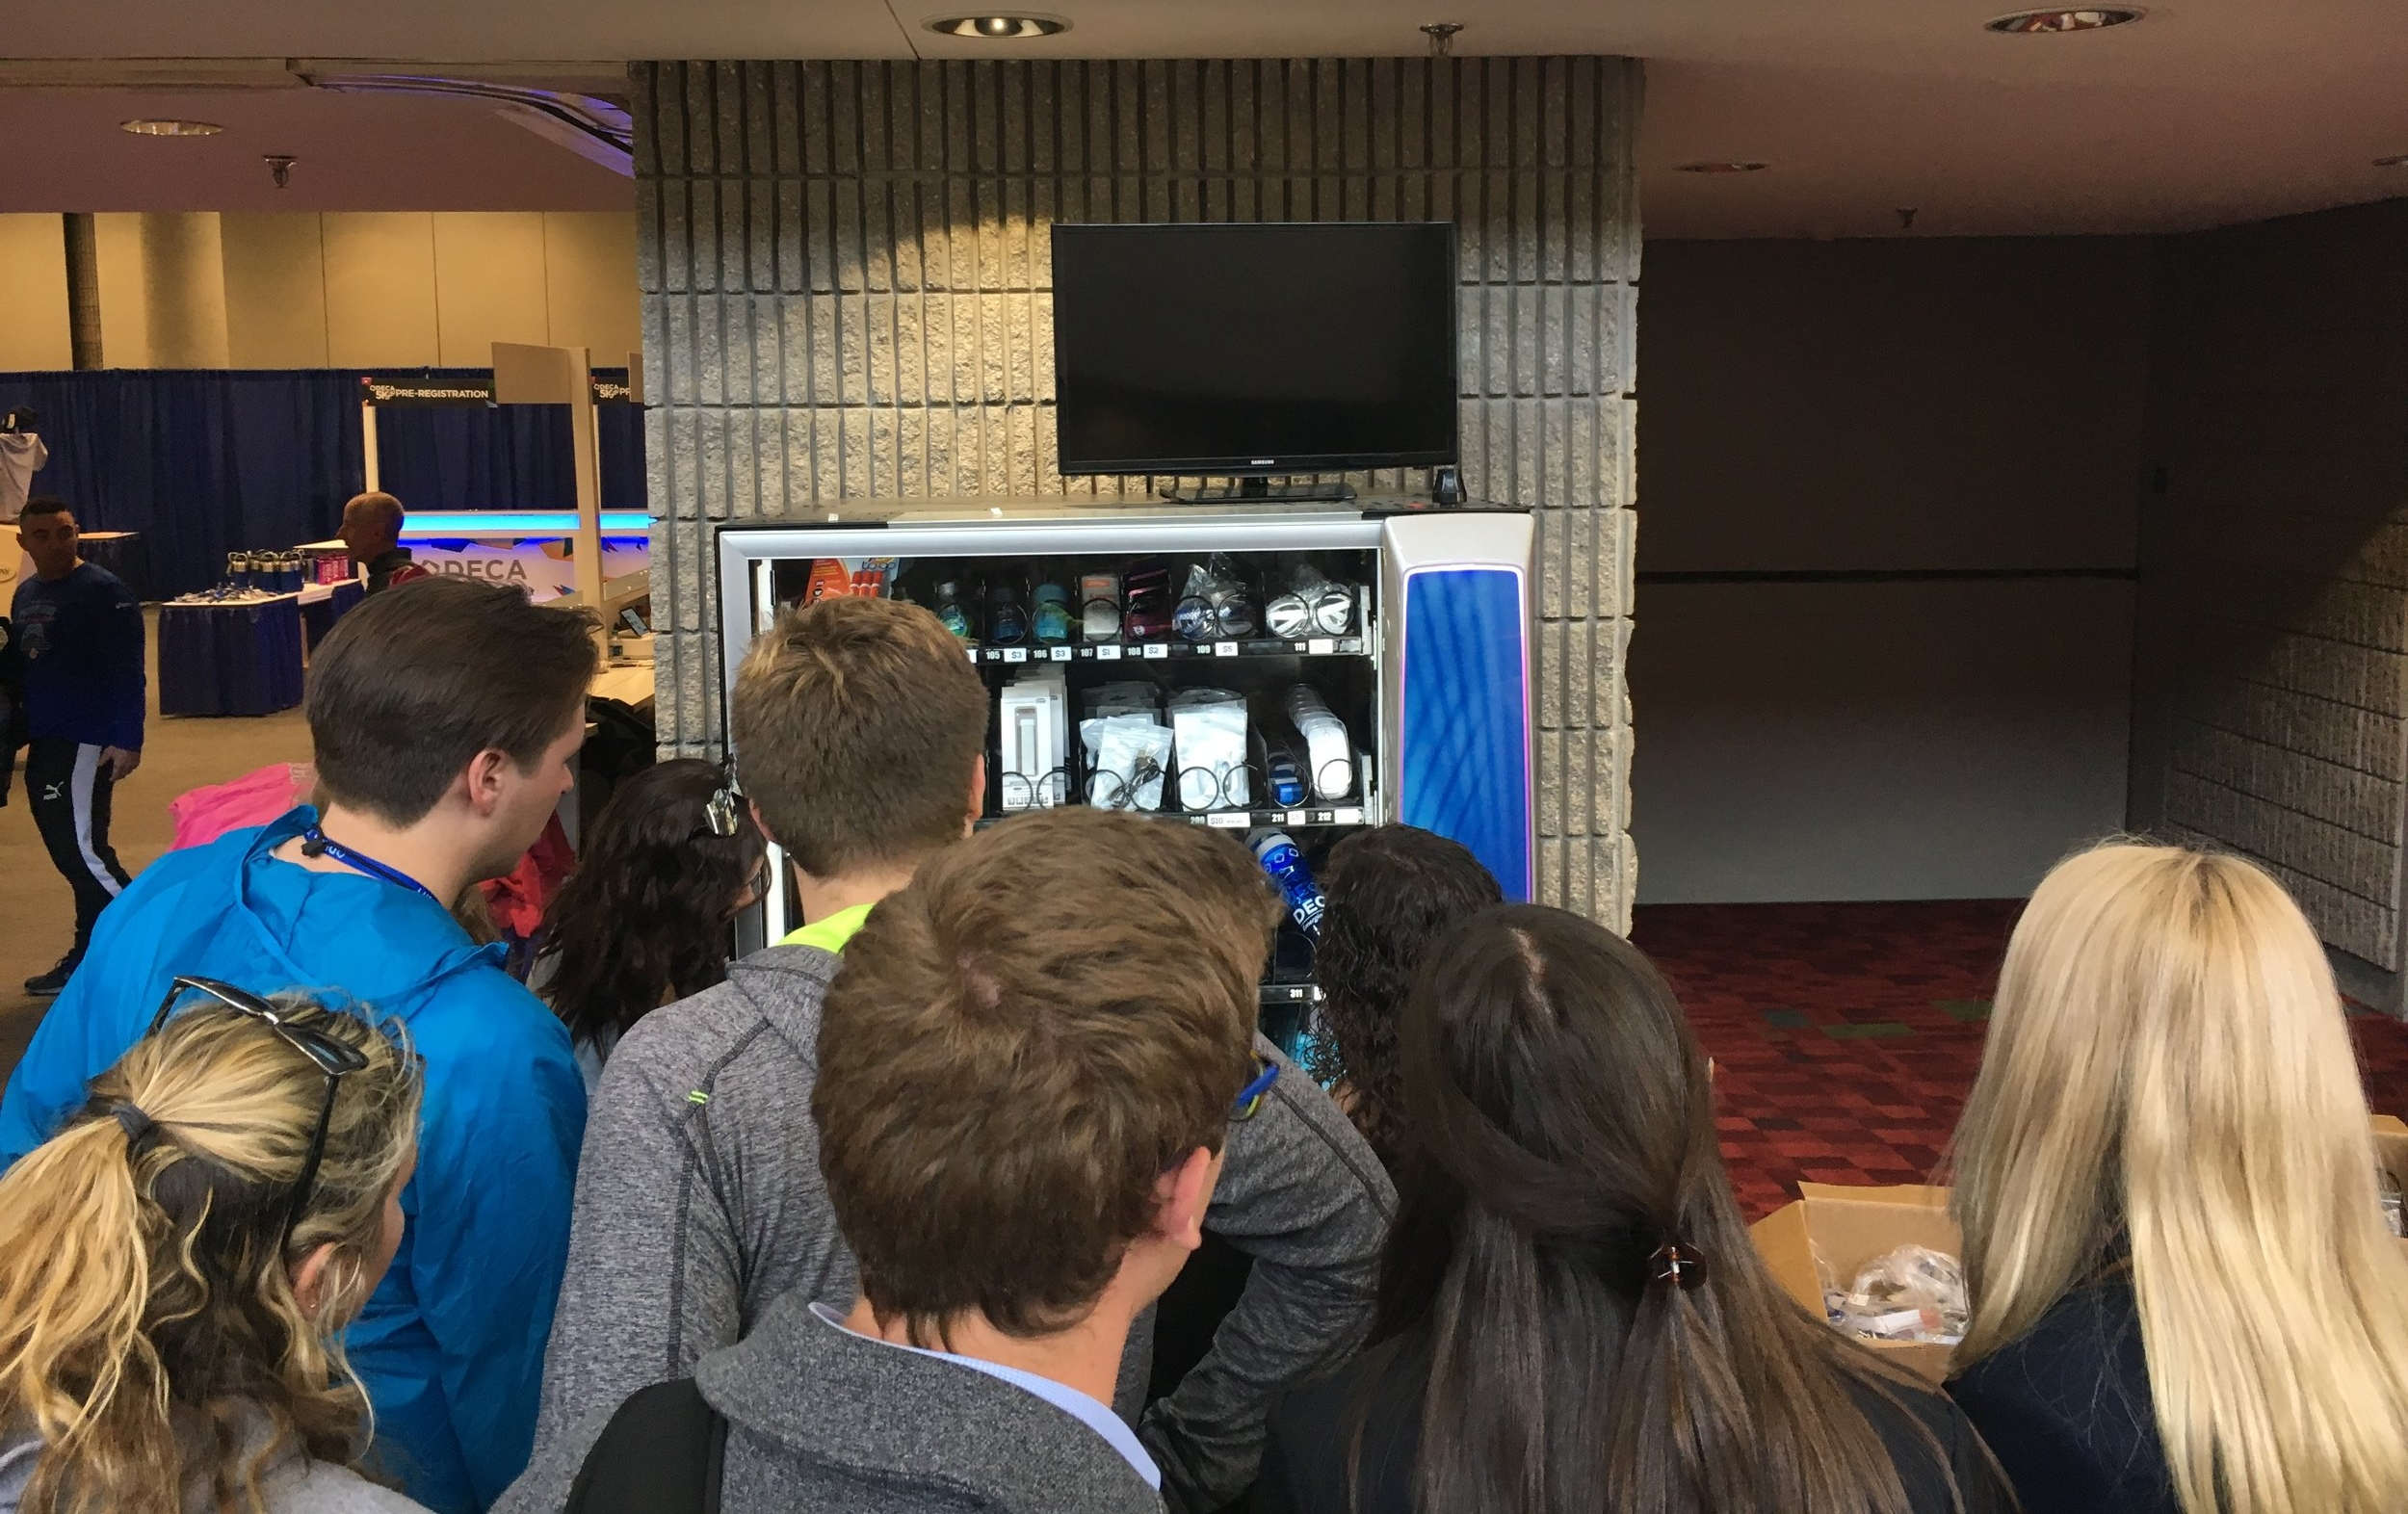 The Shop DECA Spirit Box was active, generating almost $4K in revenue in less than 3 days! We plan to have 4 Spirit Boxes setup at ICDC 2019.